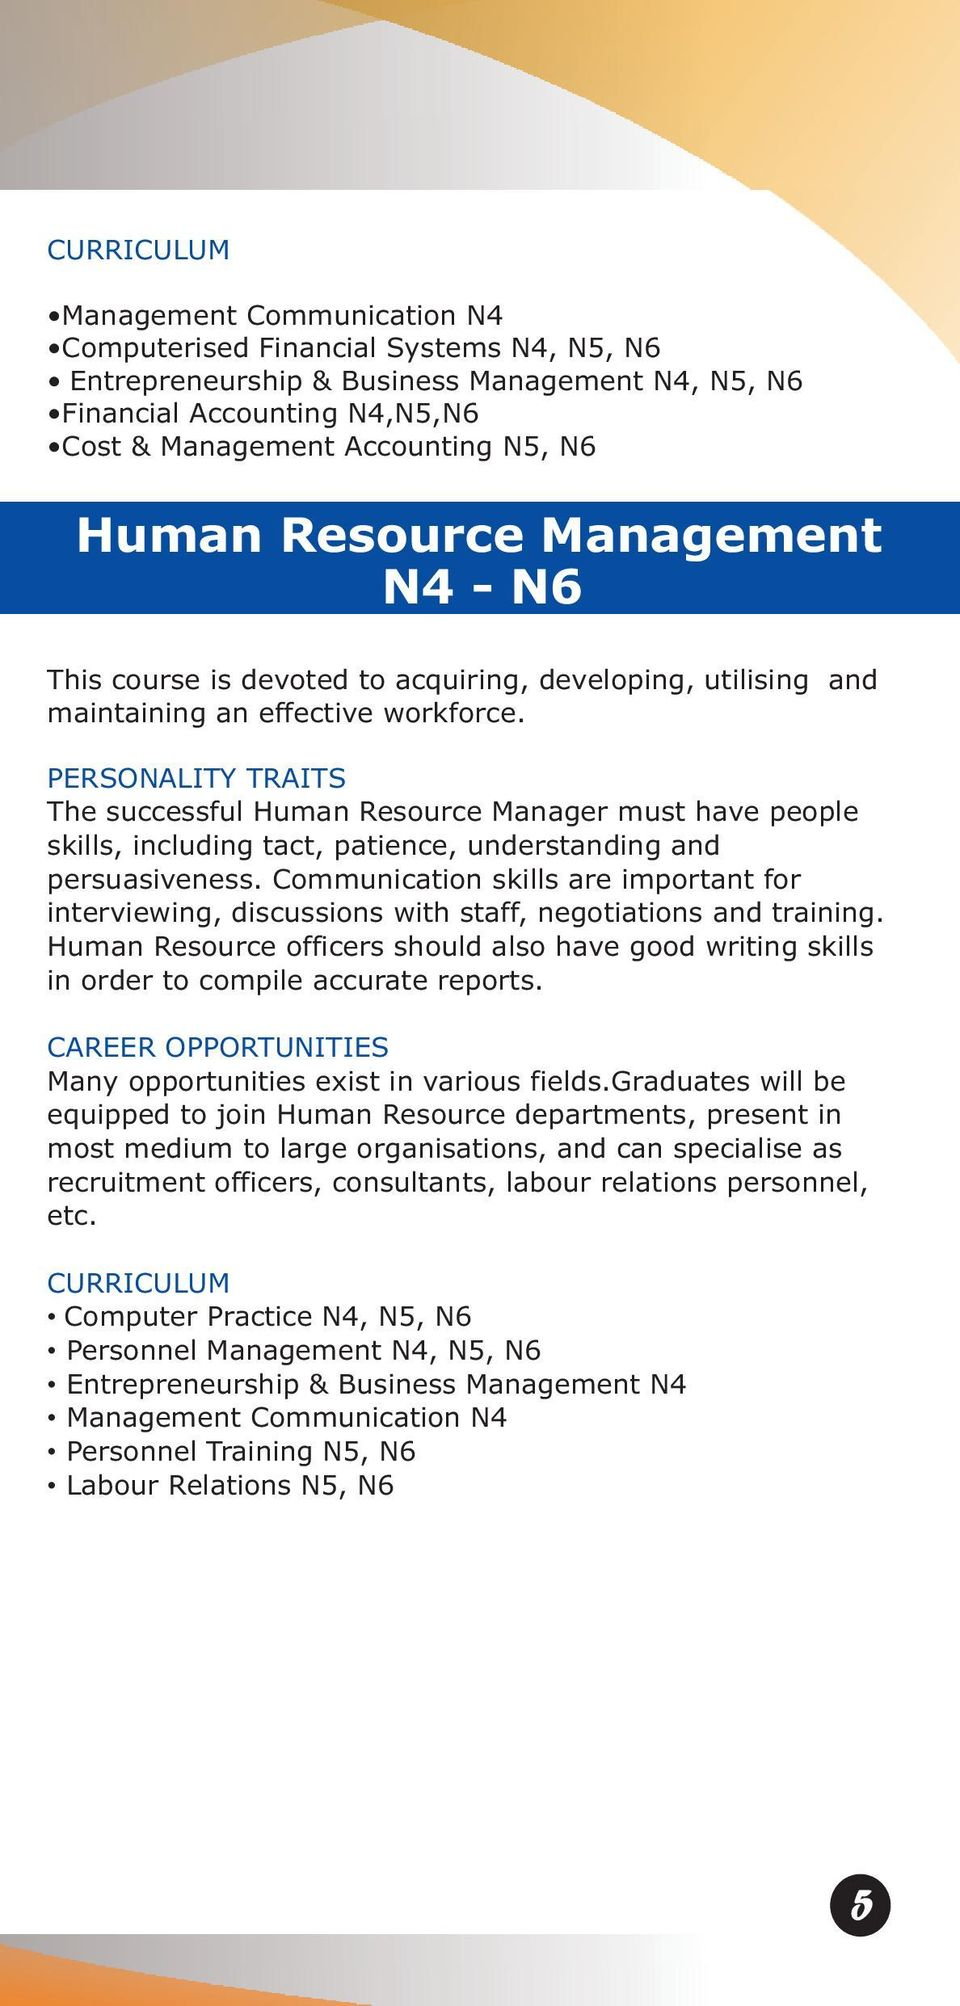 ... N6 Labour Relations N5, N6 5. PERSONALITY TRAITS The successful Human  Resource Manager must have people skills, including tact, patience